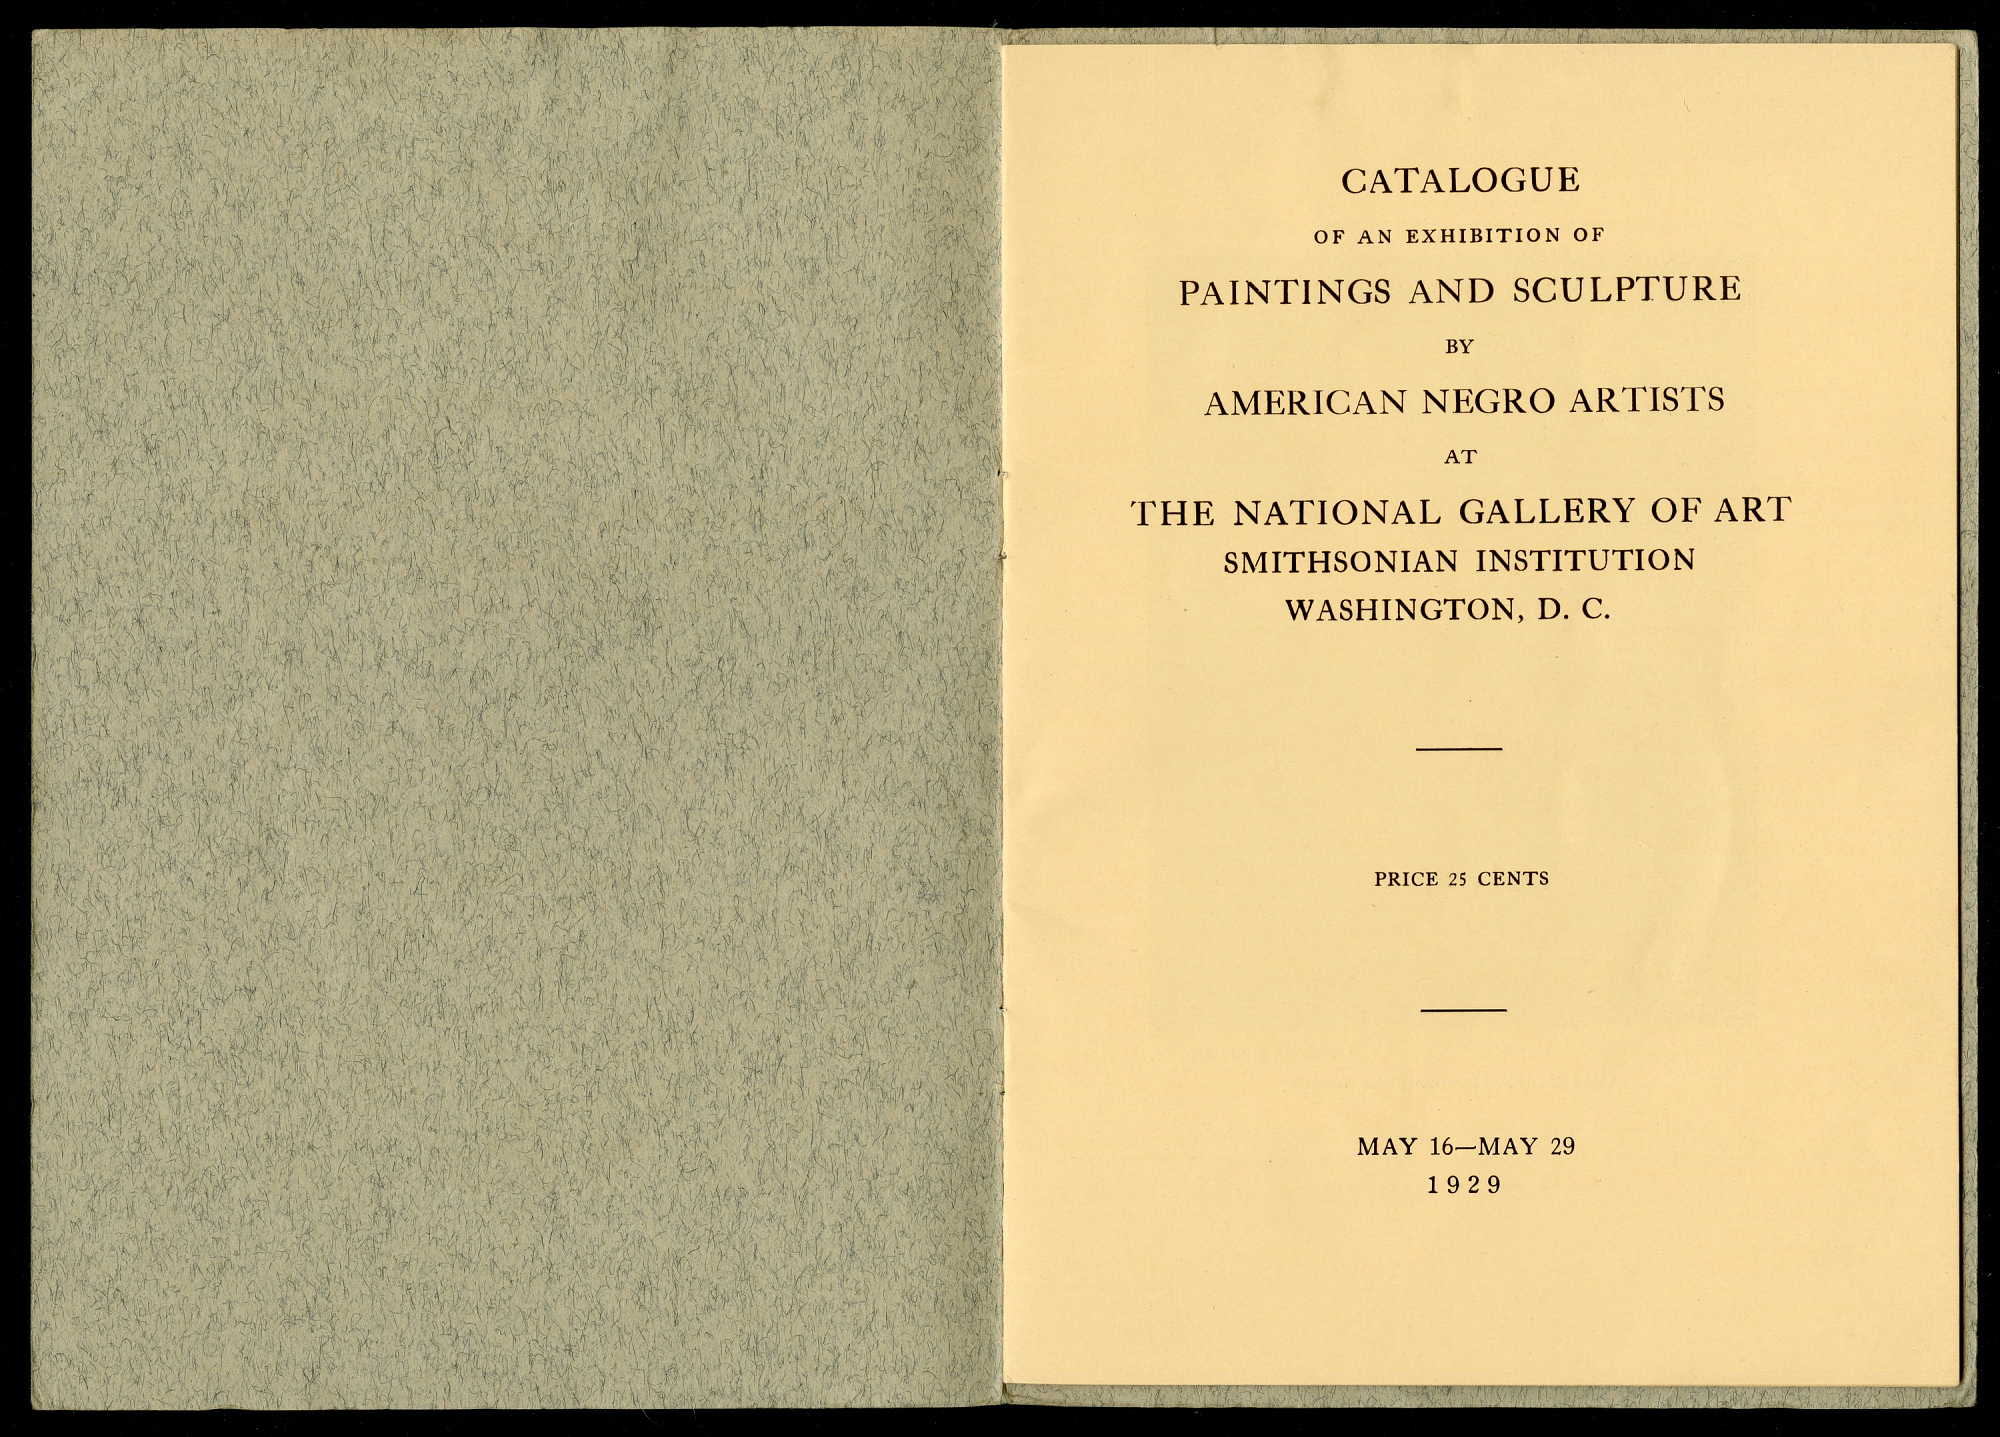 Paintings and Sculpture by American Negro Artists at the National Gallery of Art, 1929.